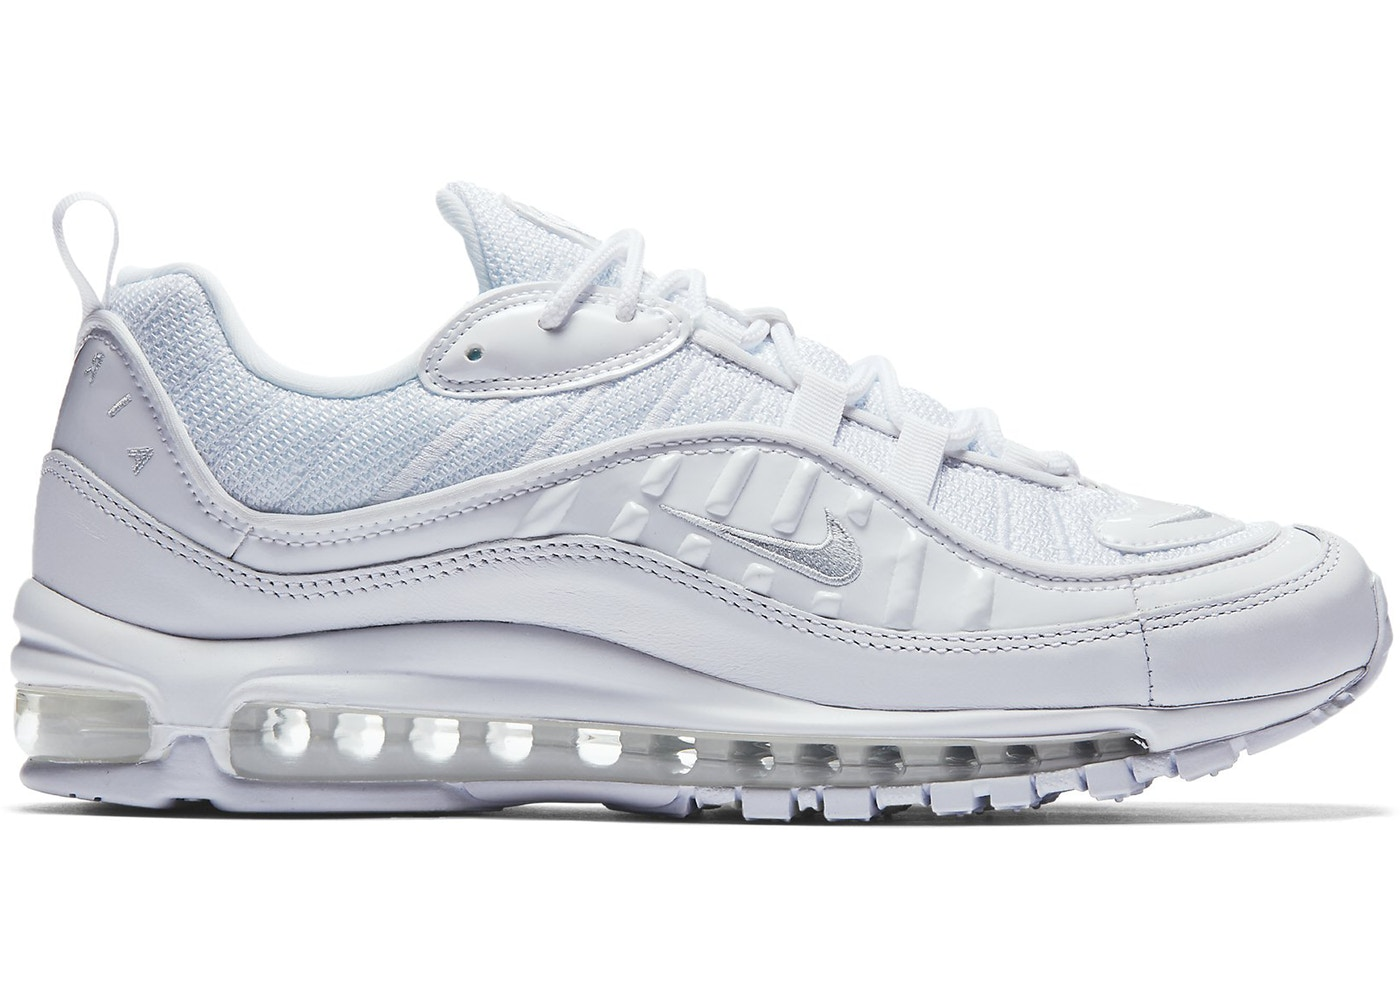 detailed look 59964 d1cb5 Air Max 98 White